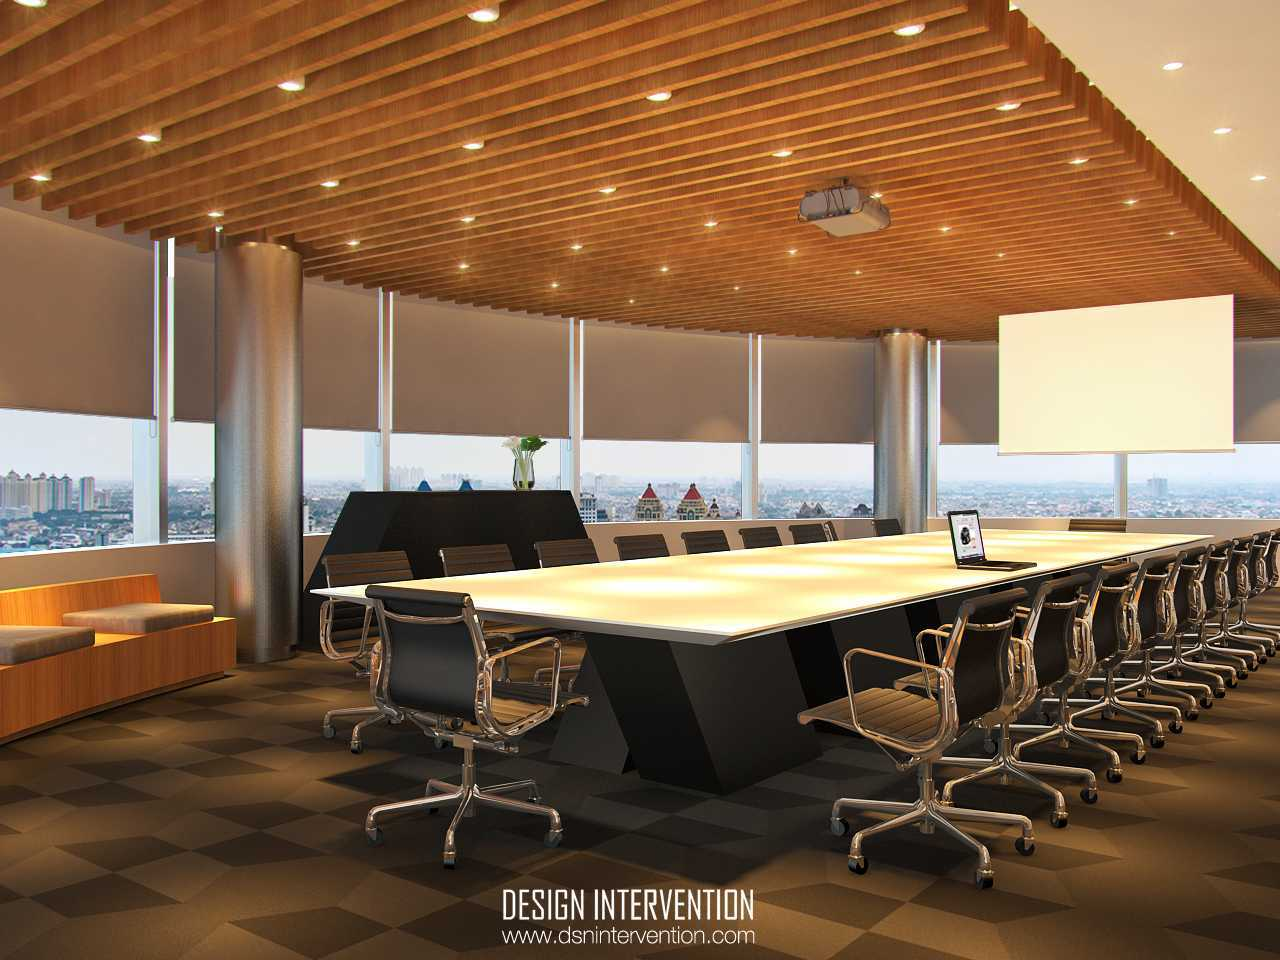 Design Intervention Mitsubishi Hq Office Tebet Tebet Meeting-Room-View   14982